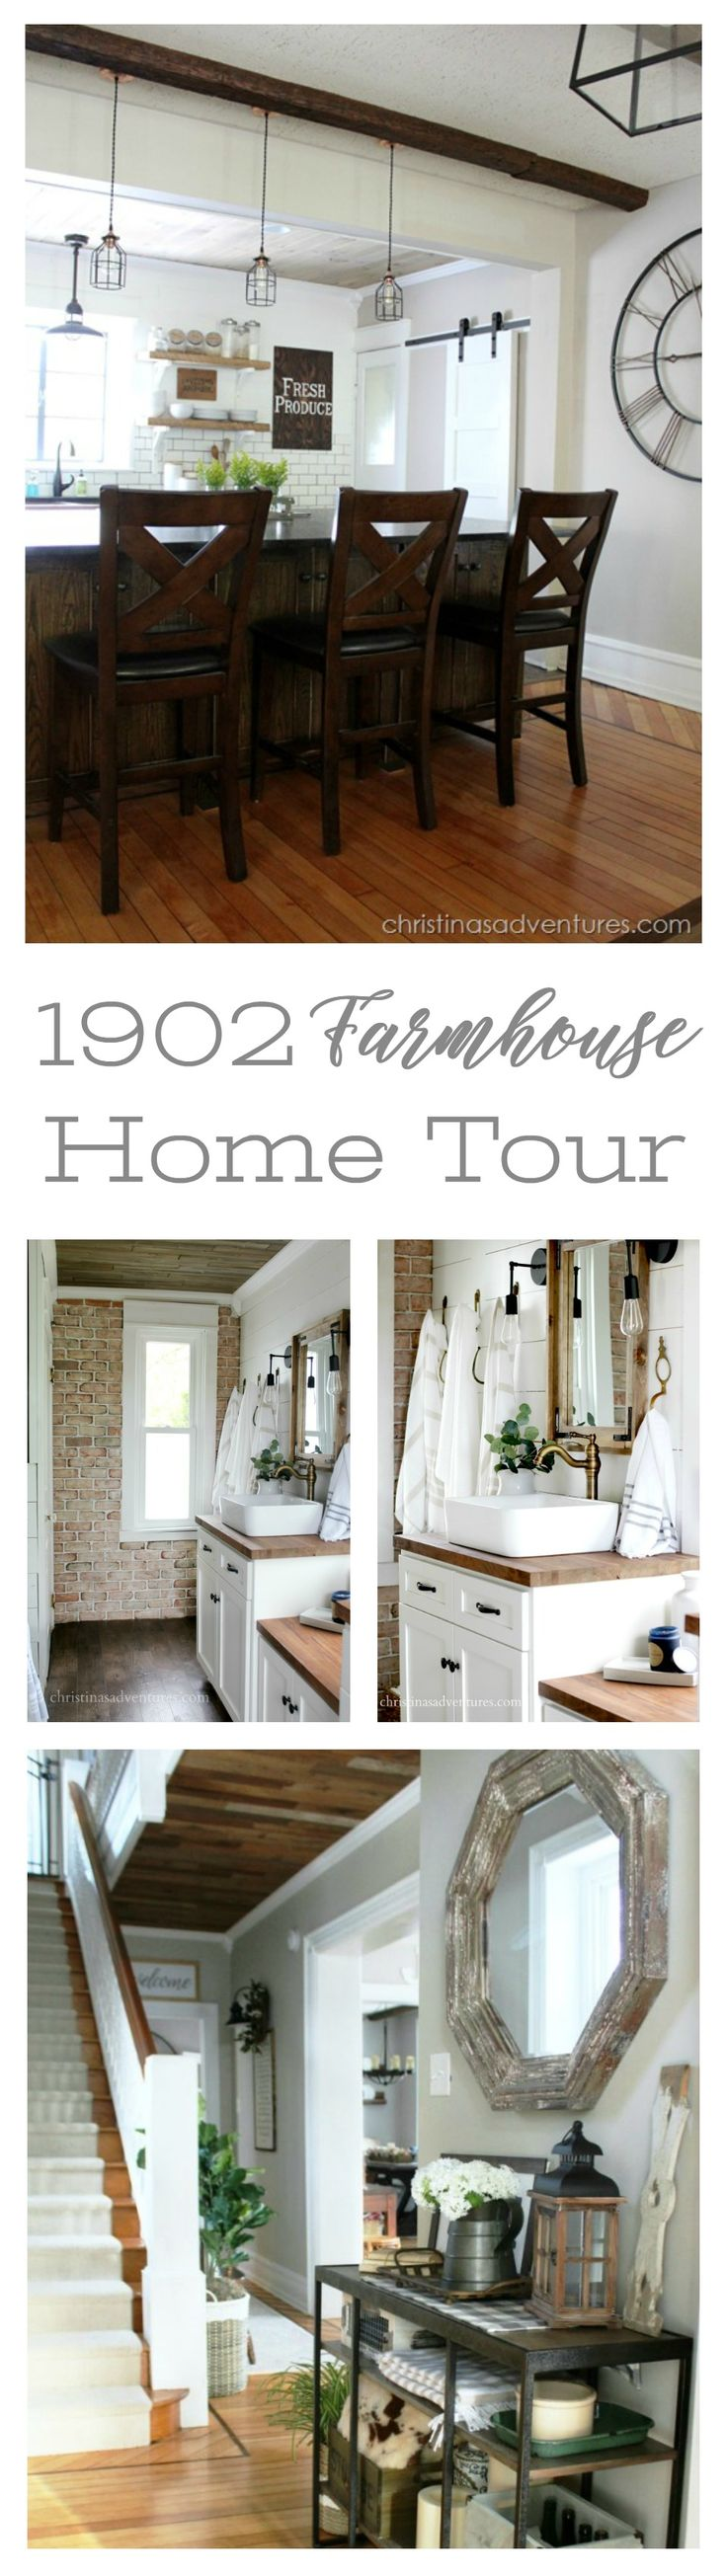 1902 Victorian Farmhouse Home Tour with Christina's Adventures - get inspired with amazing before and afters of this renovated vintage house.